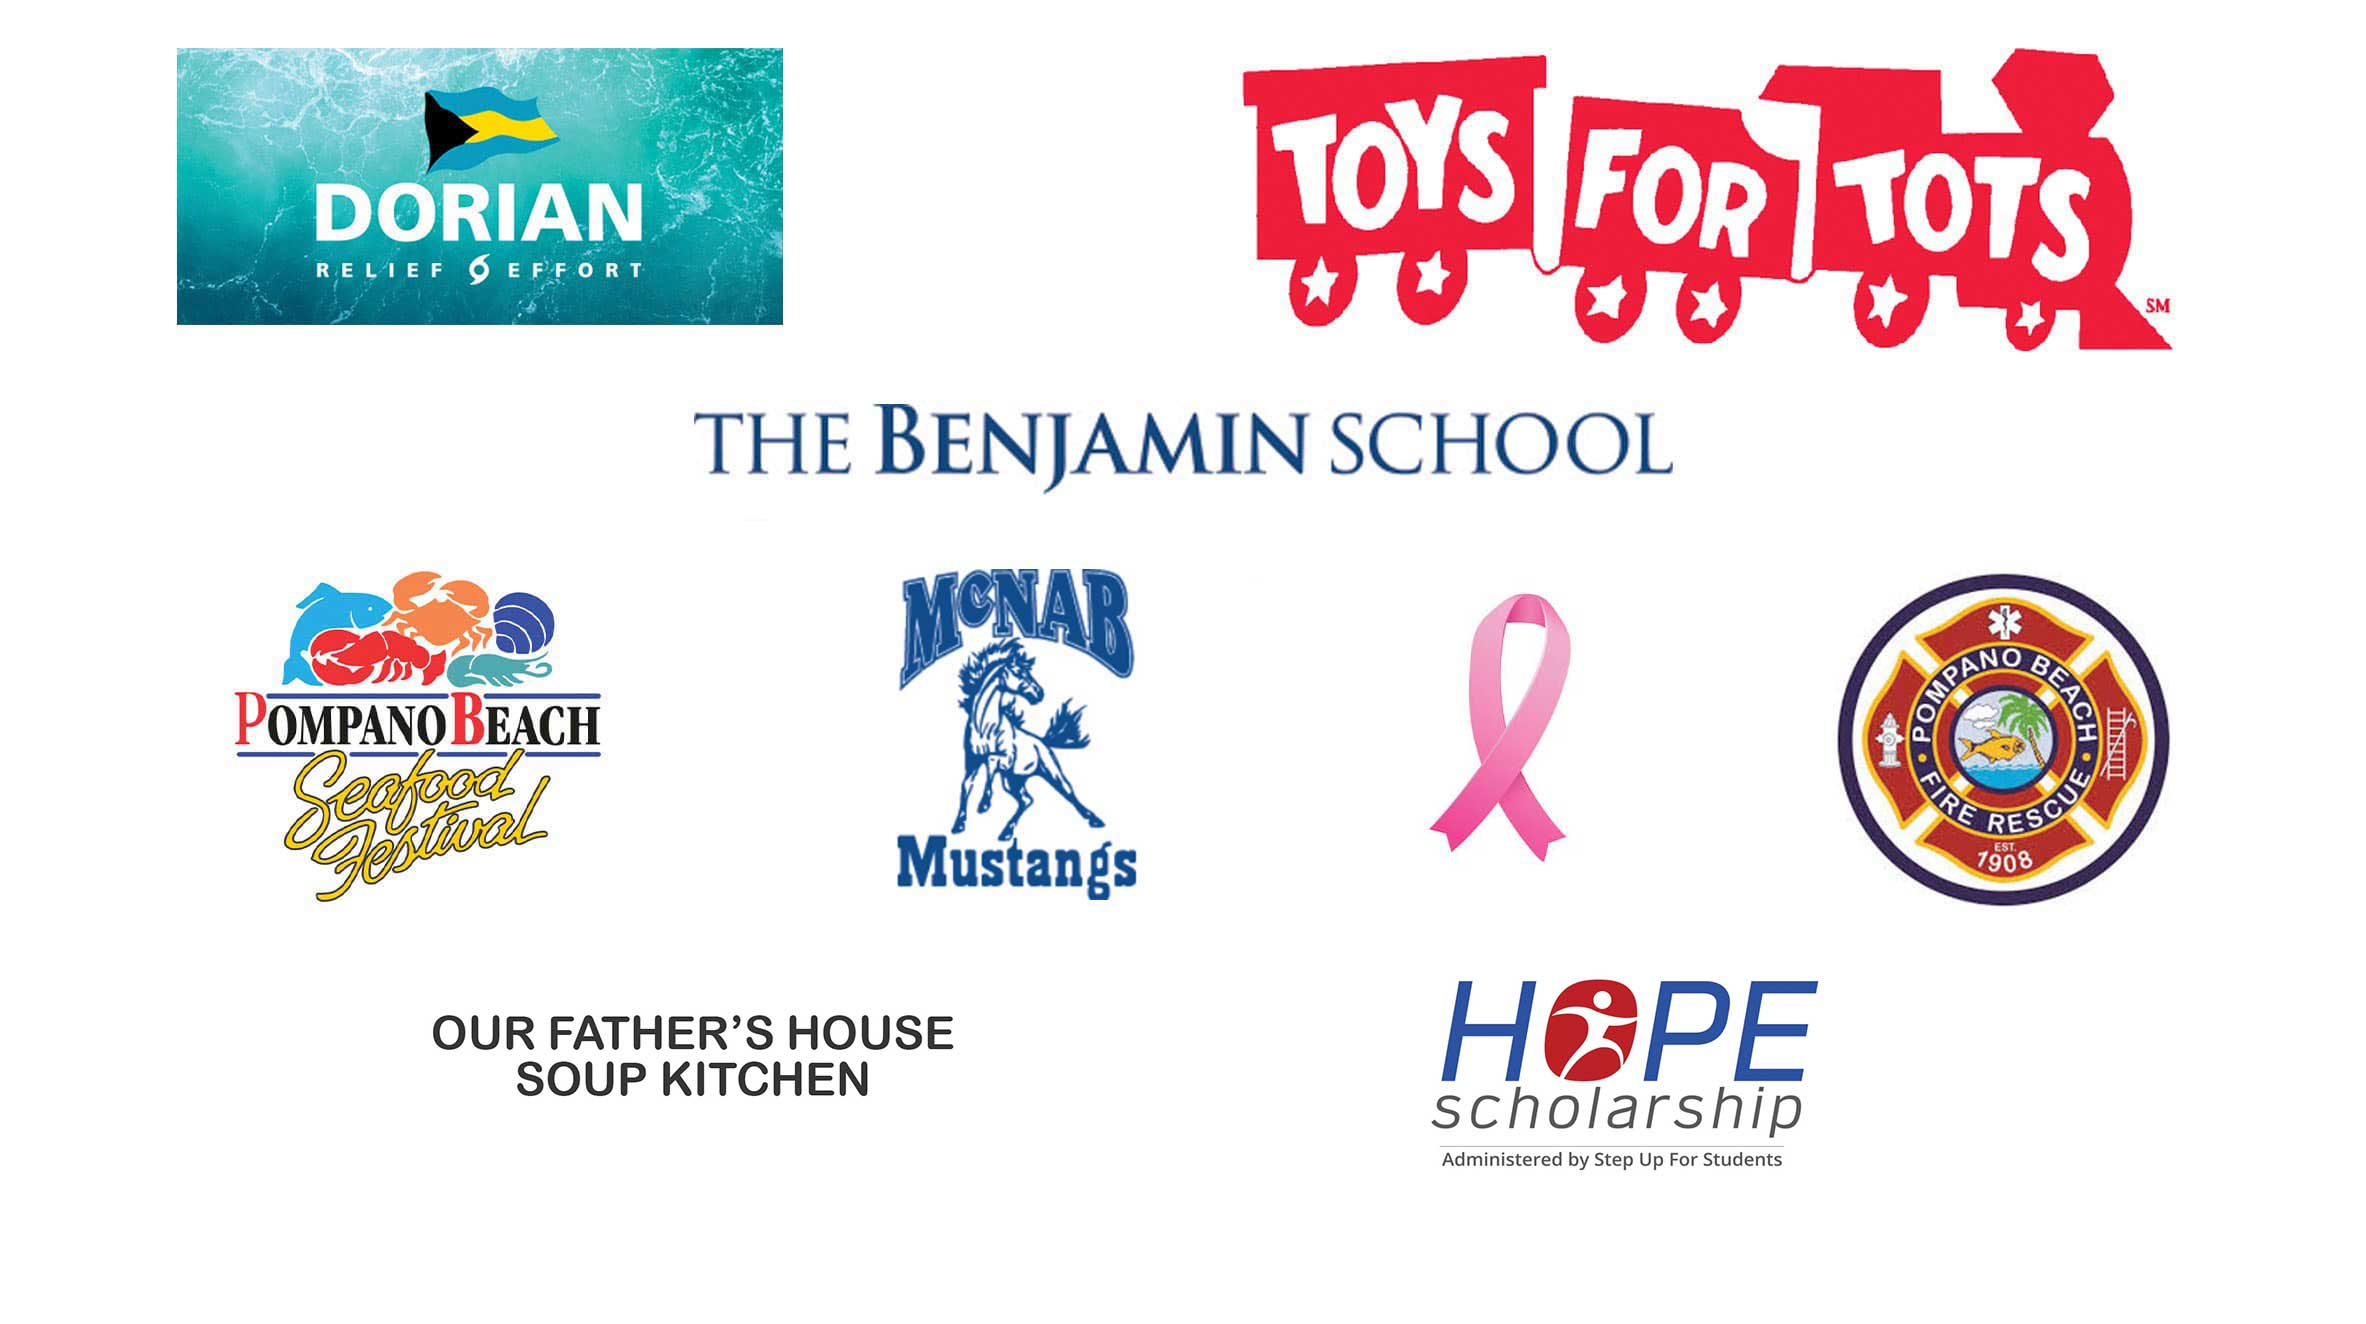 Performance Nissan supports Pompano Beach Seafood Festival, Toys for Tots, St. Jude Children's Hospital, and more